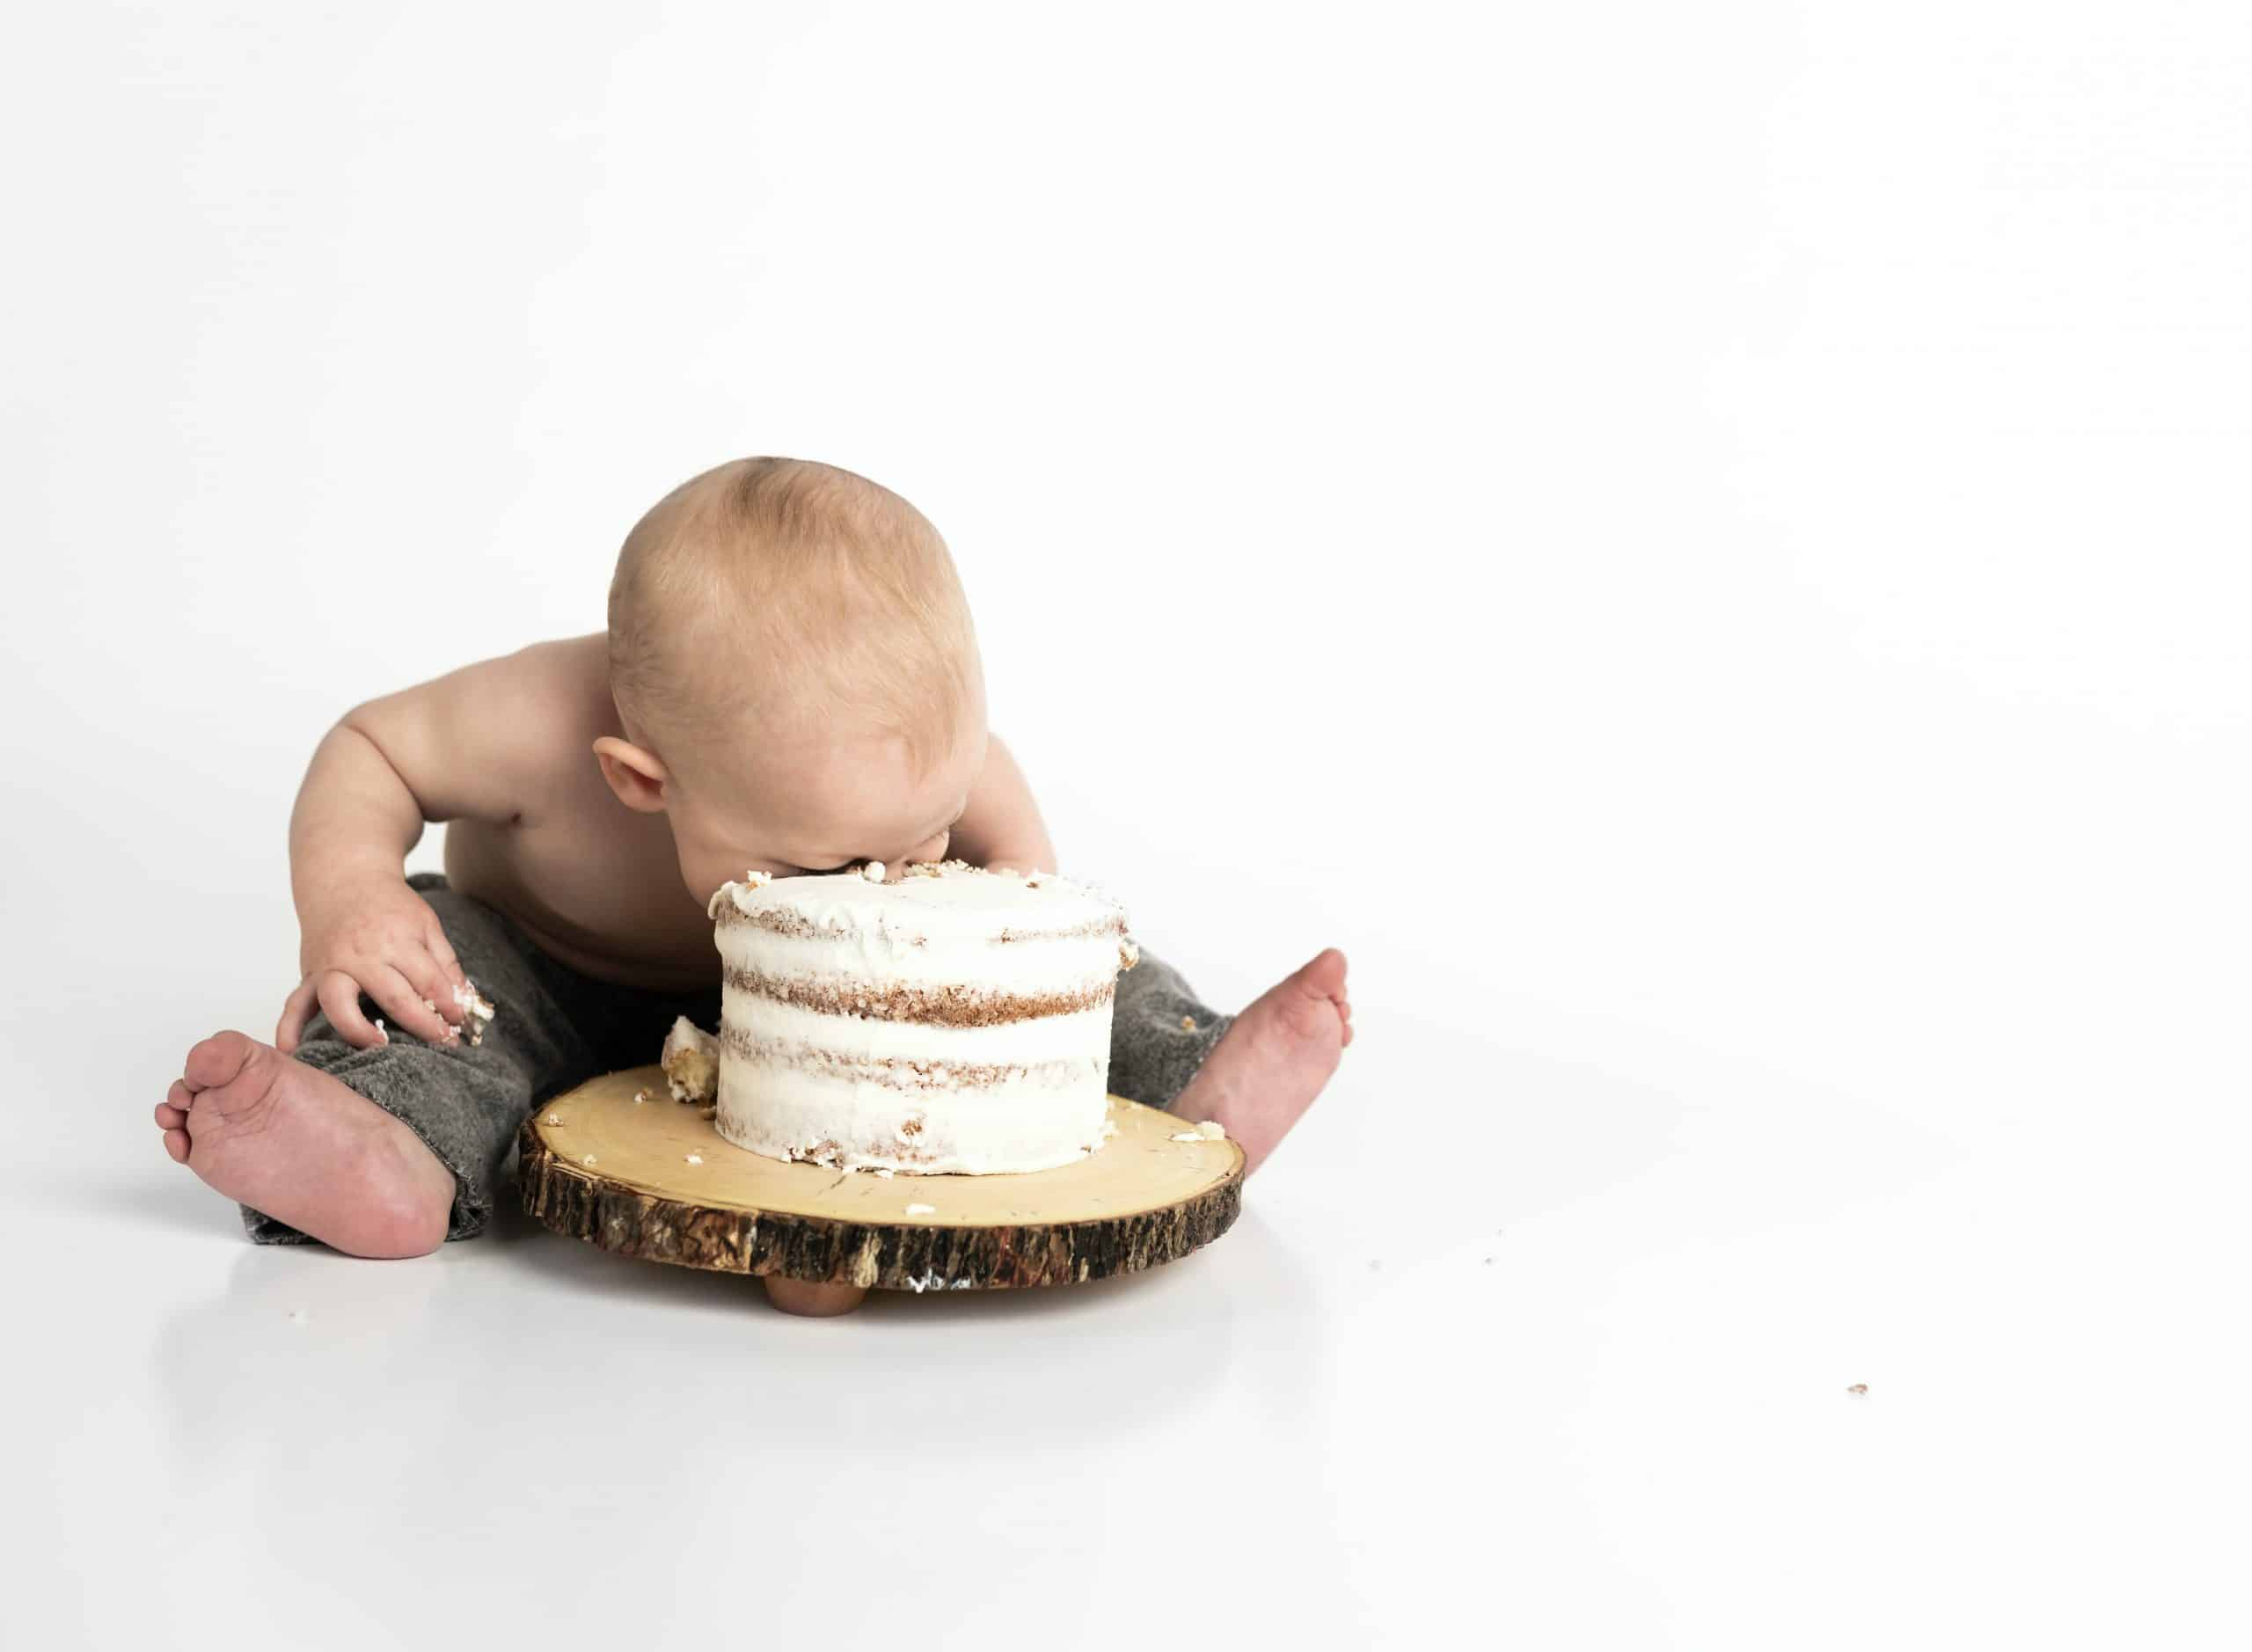 baby eating cake- hungry at night